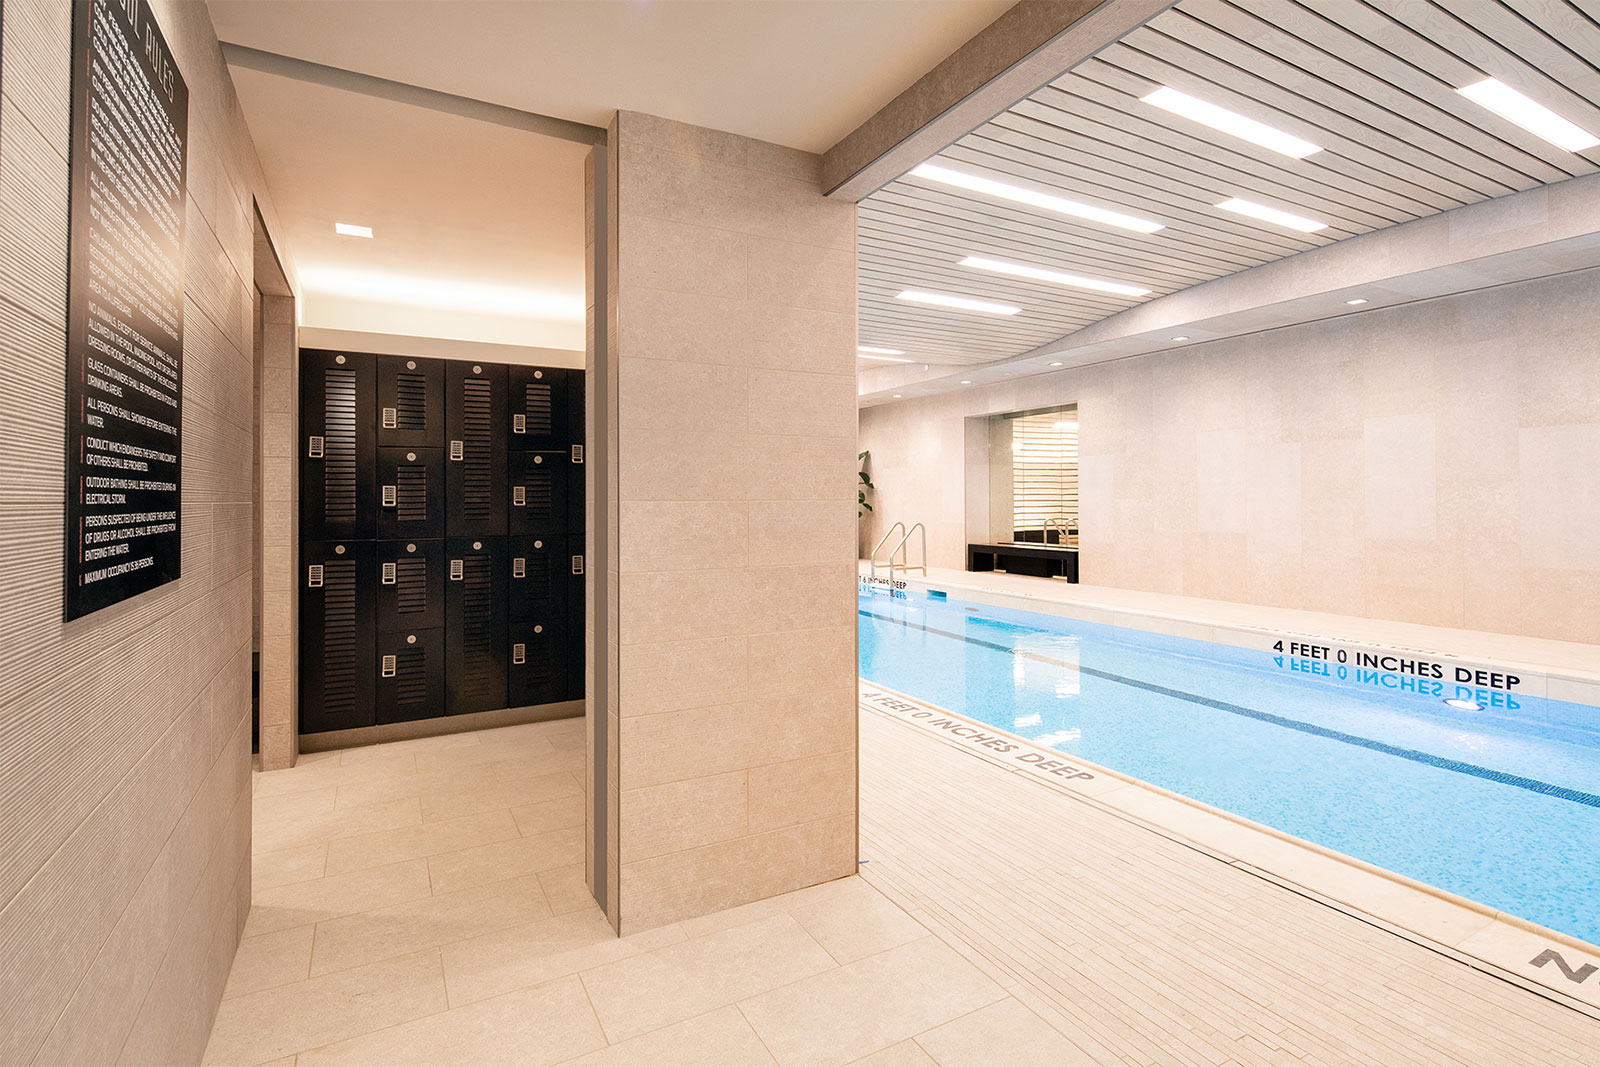 Saltwater Lap Pool & Lockers